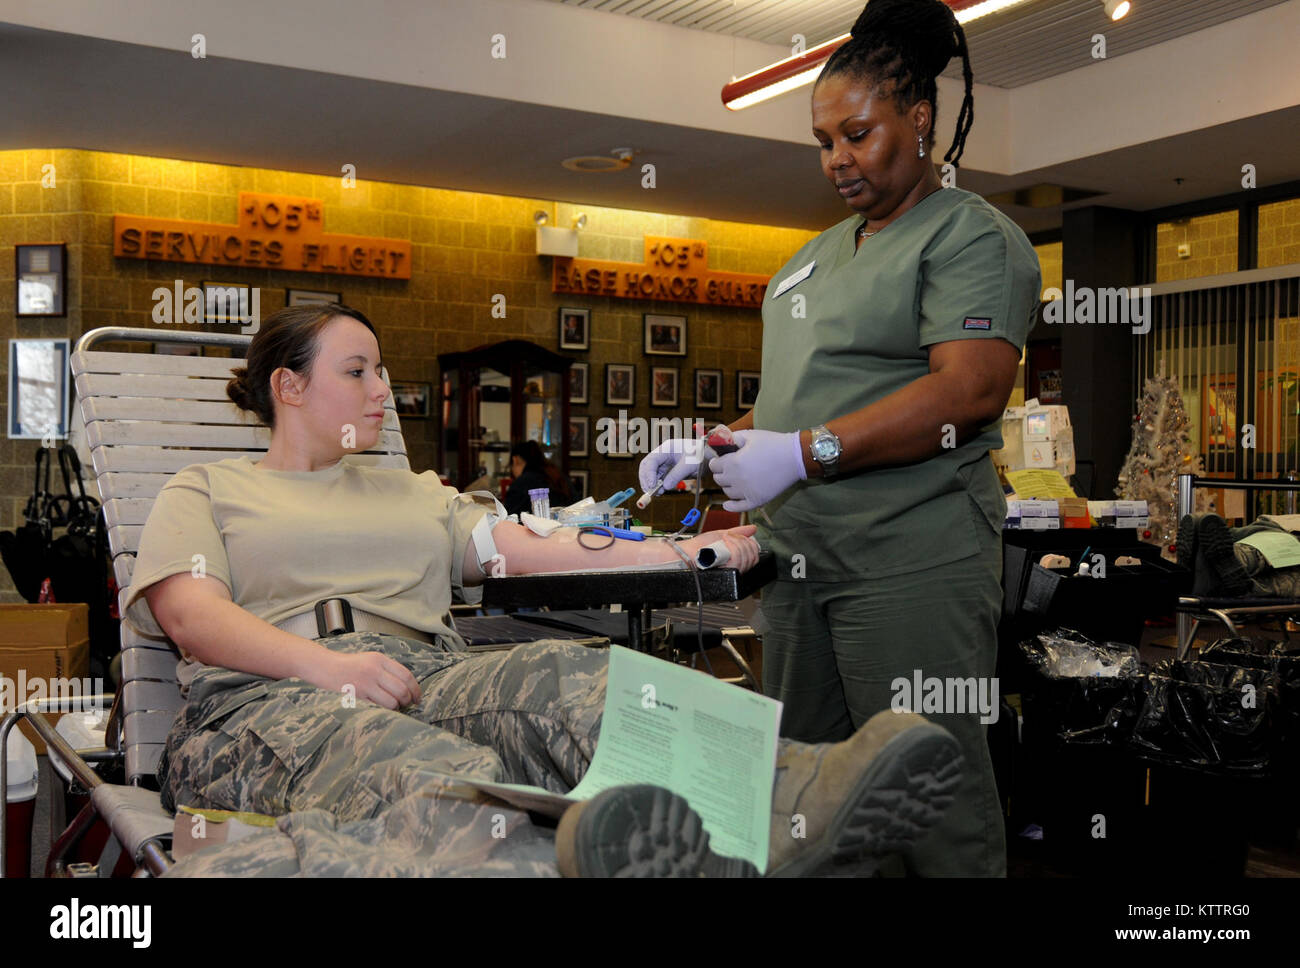 STEWART ANGB, N.Y. –Technician Judy preps A1C Deanna De Laura for her donation of blood at the holiday blood drive, - Stock Image